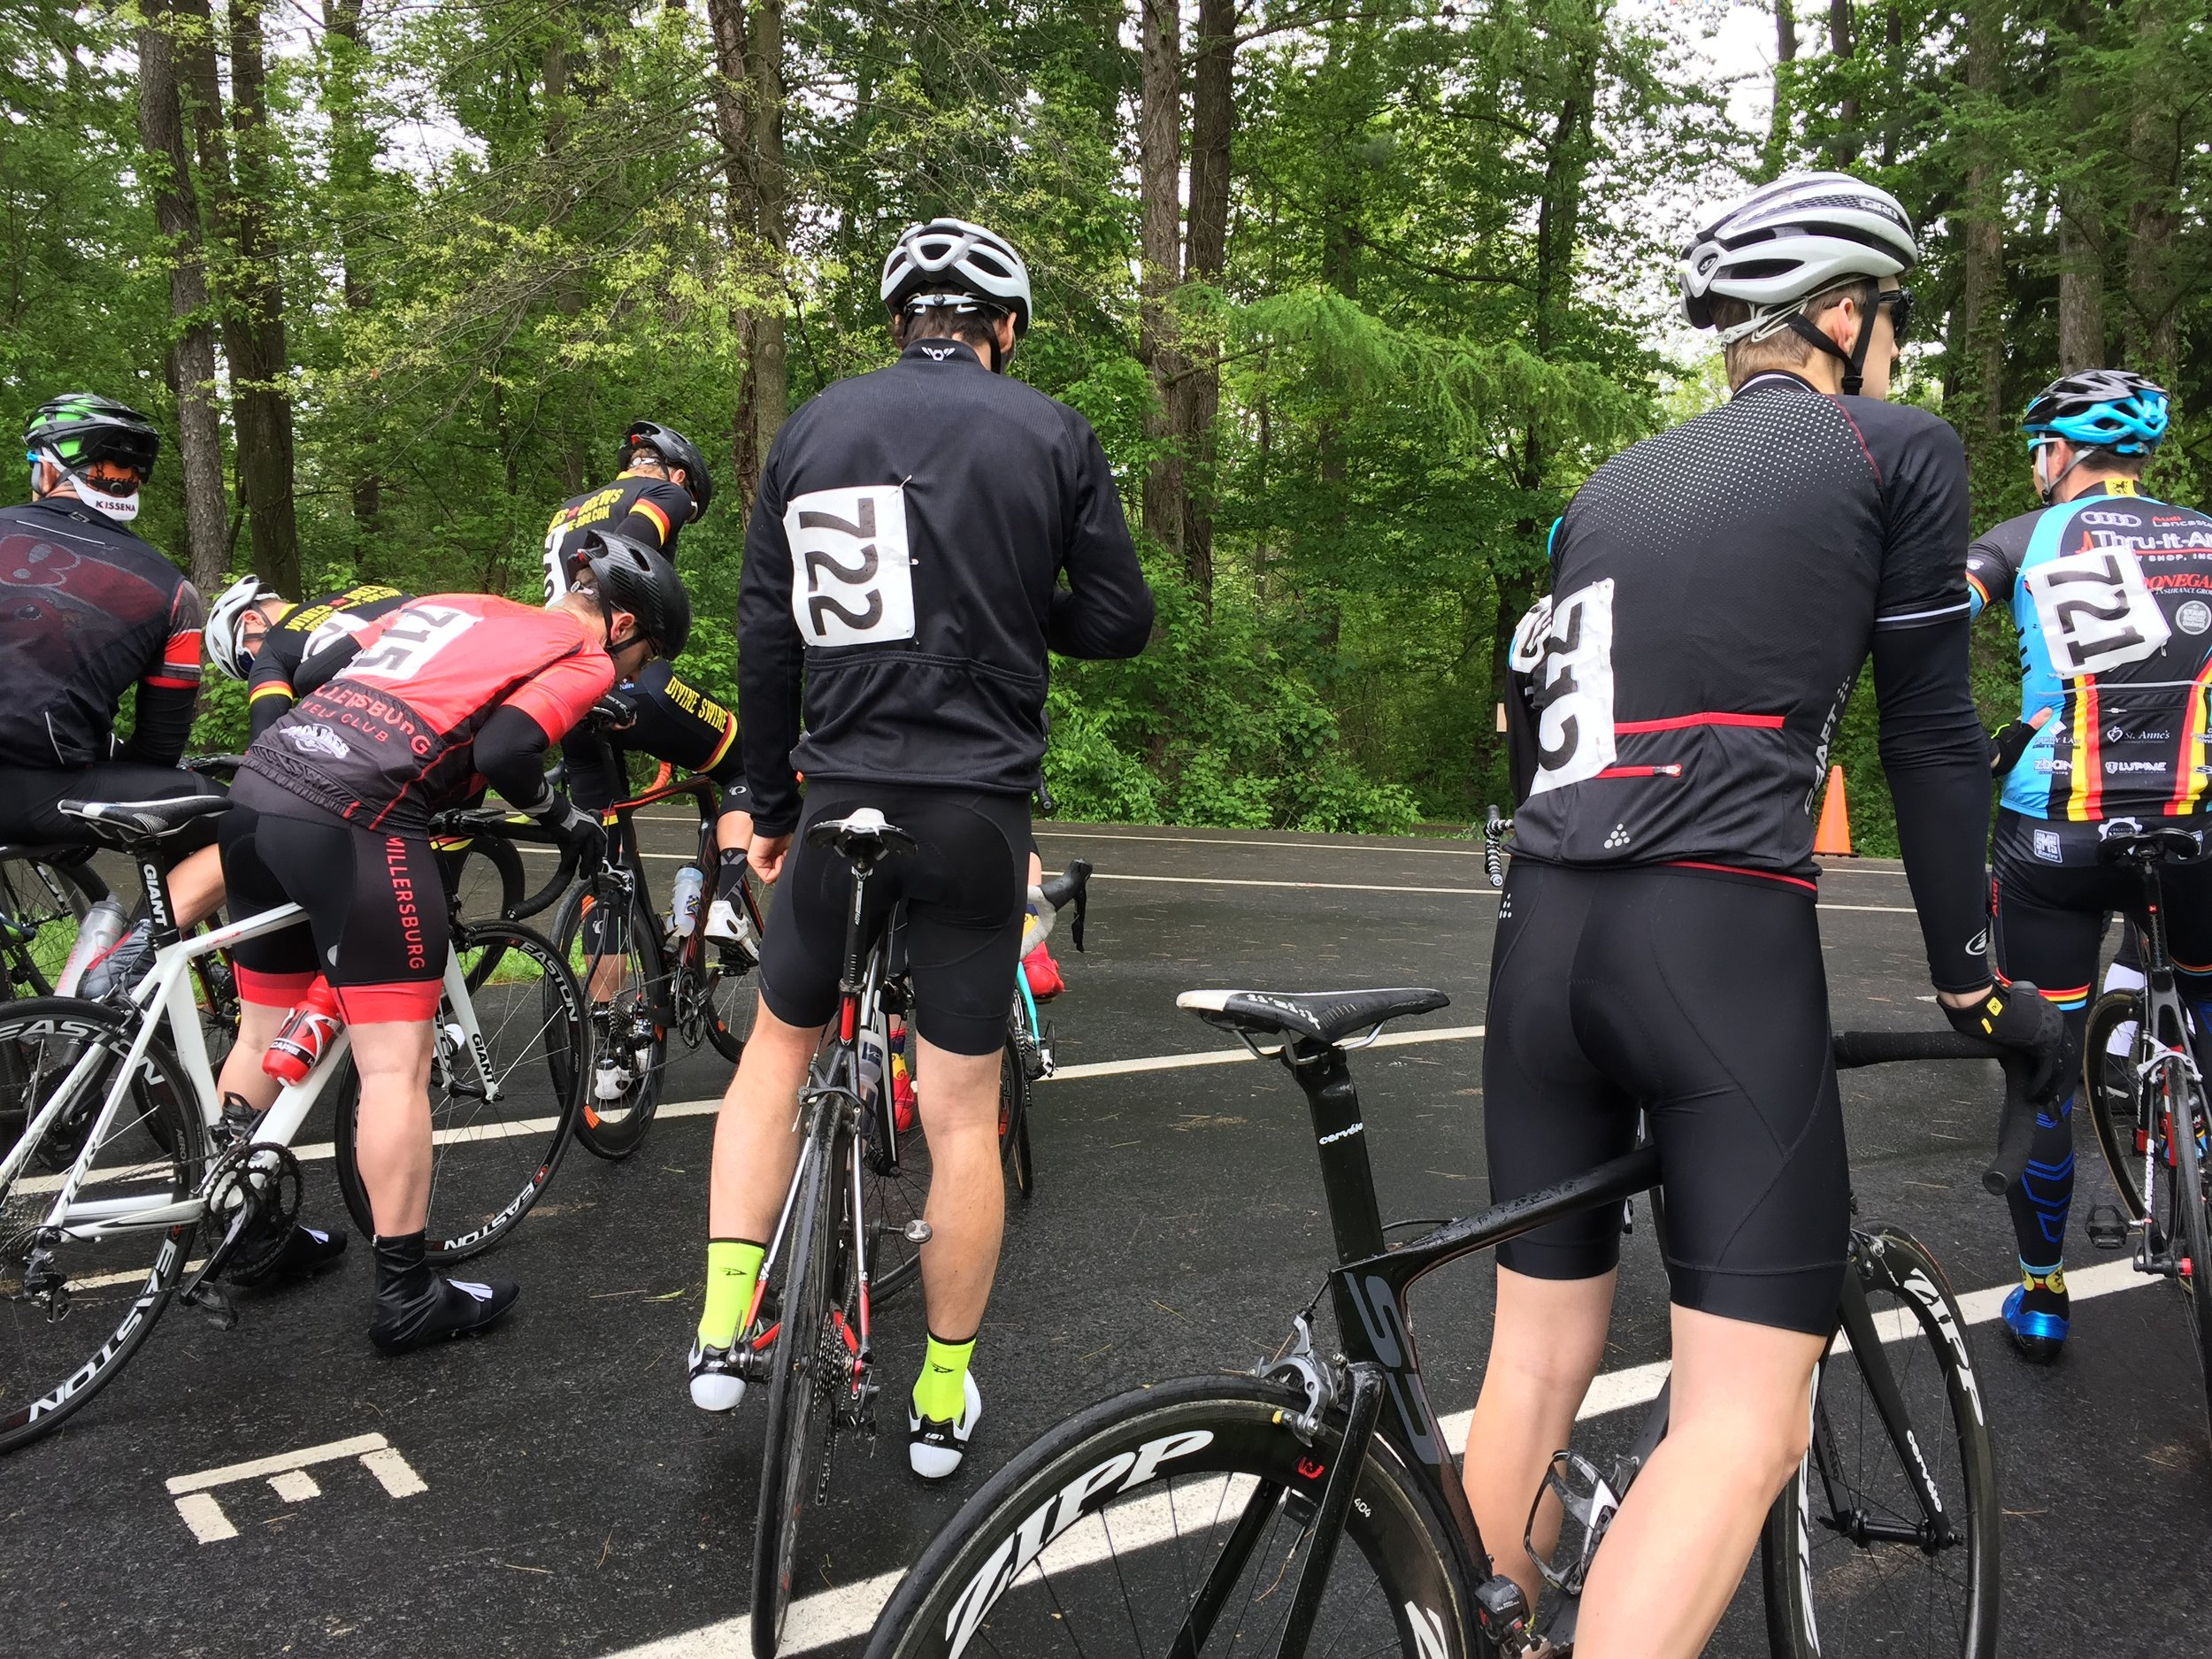 Riders ready for the Cat 2/3/4 were discussing the conditions before the start of the race.